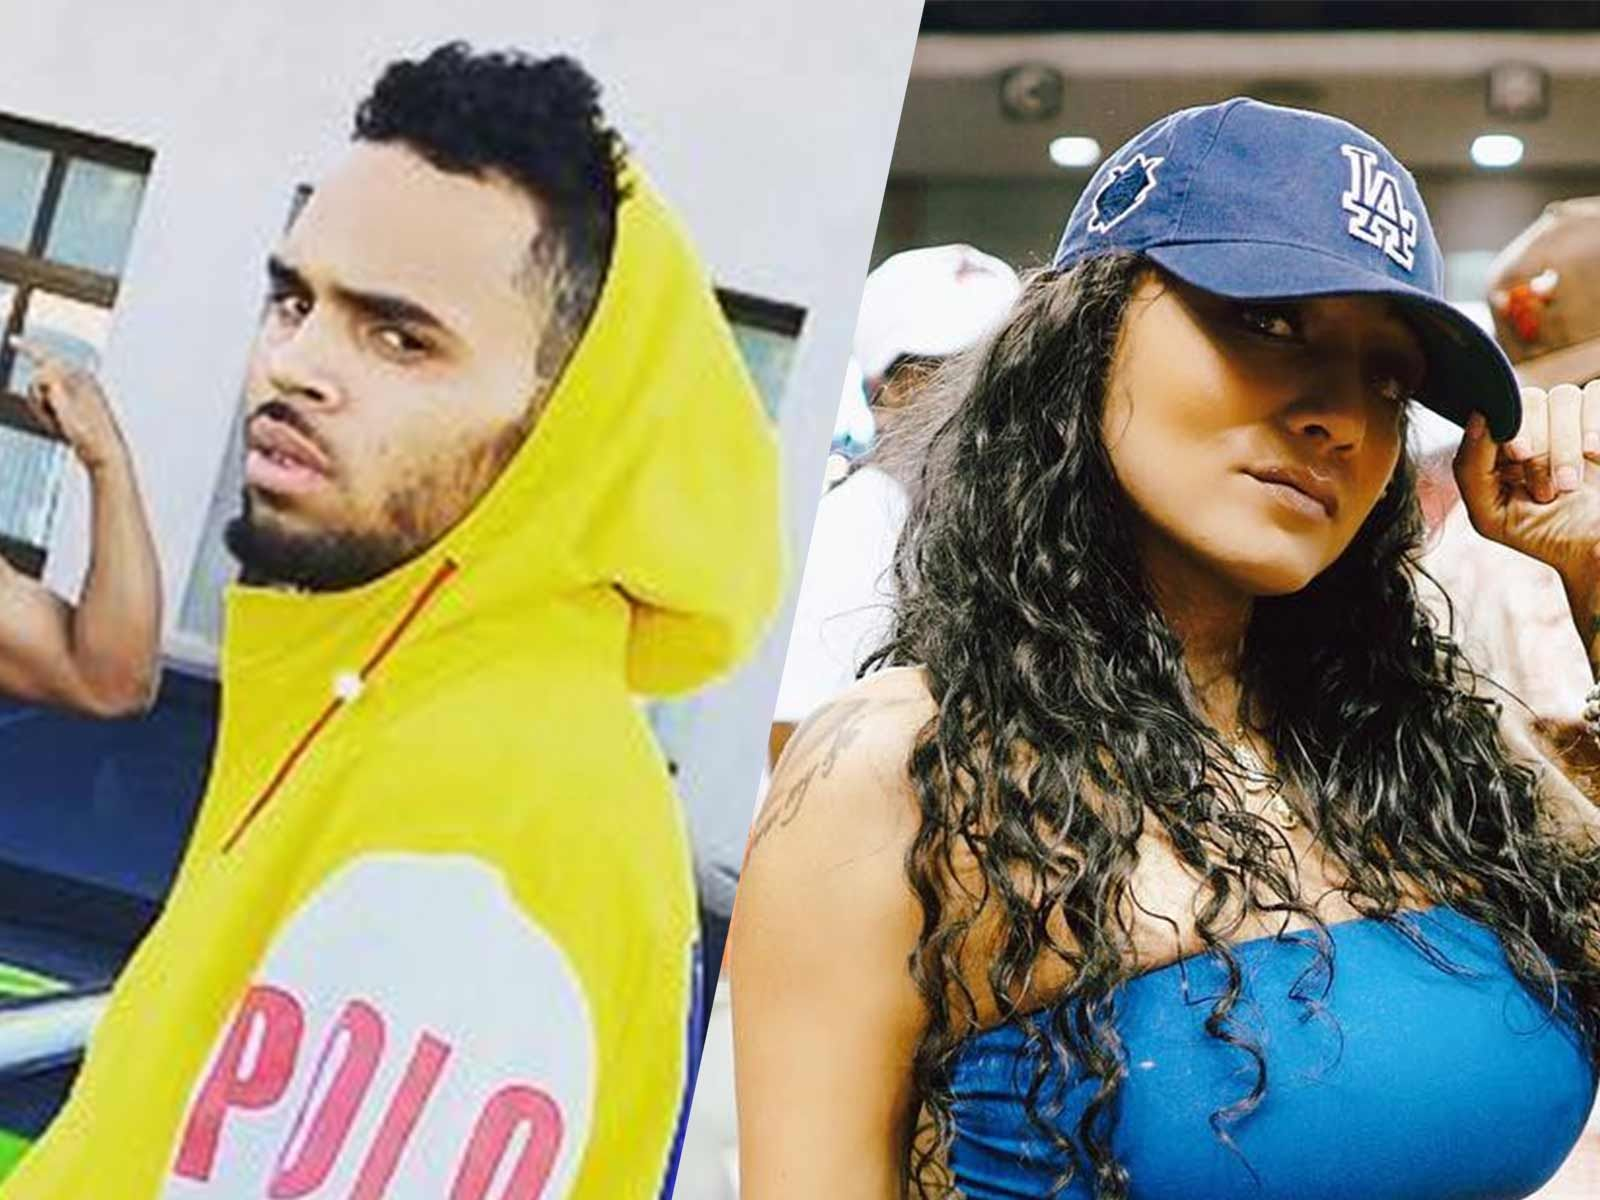 Chris Brown's Baby Mama is Worried Over Fans Shouting At